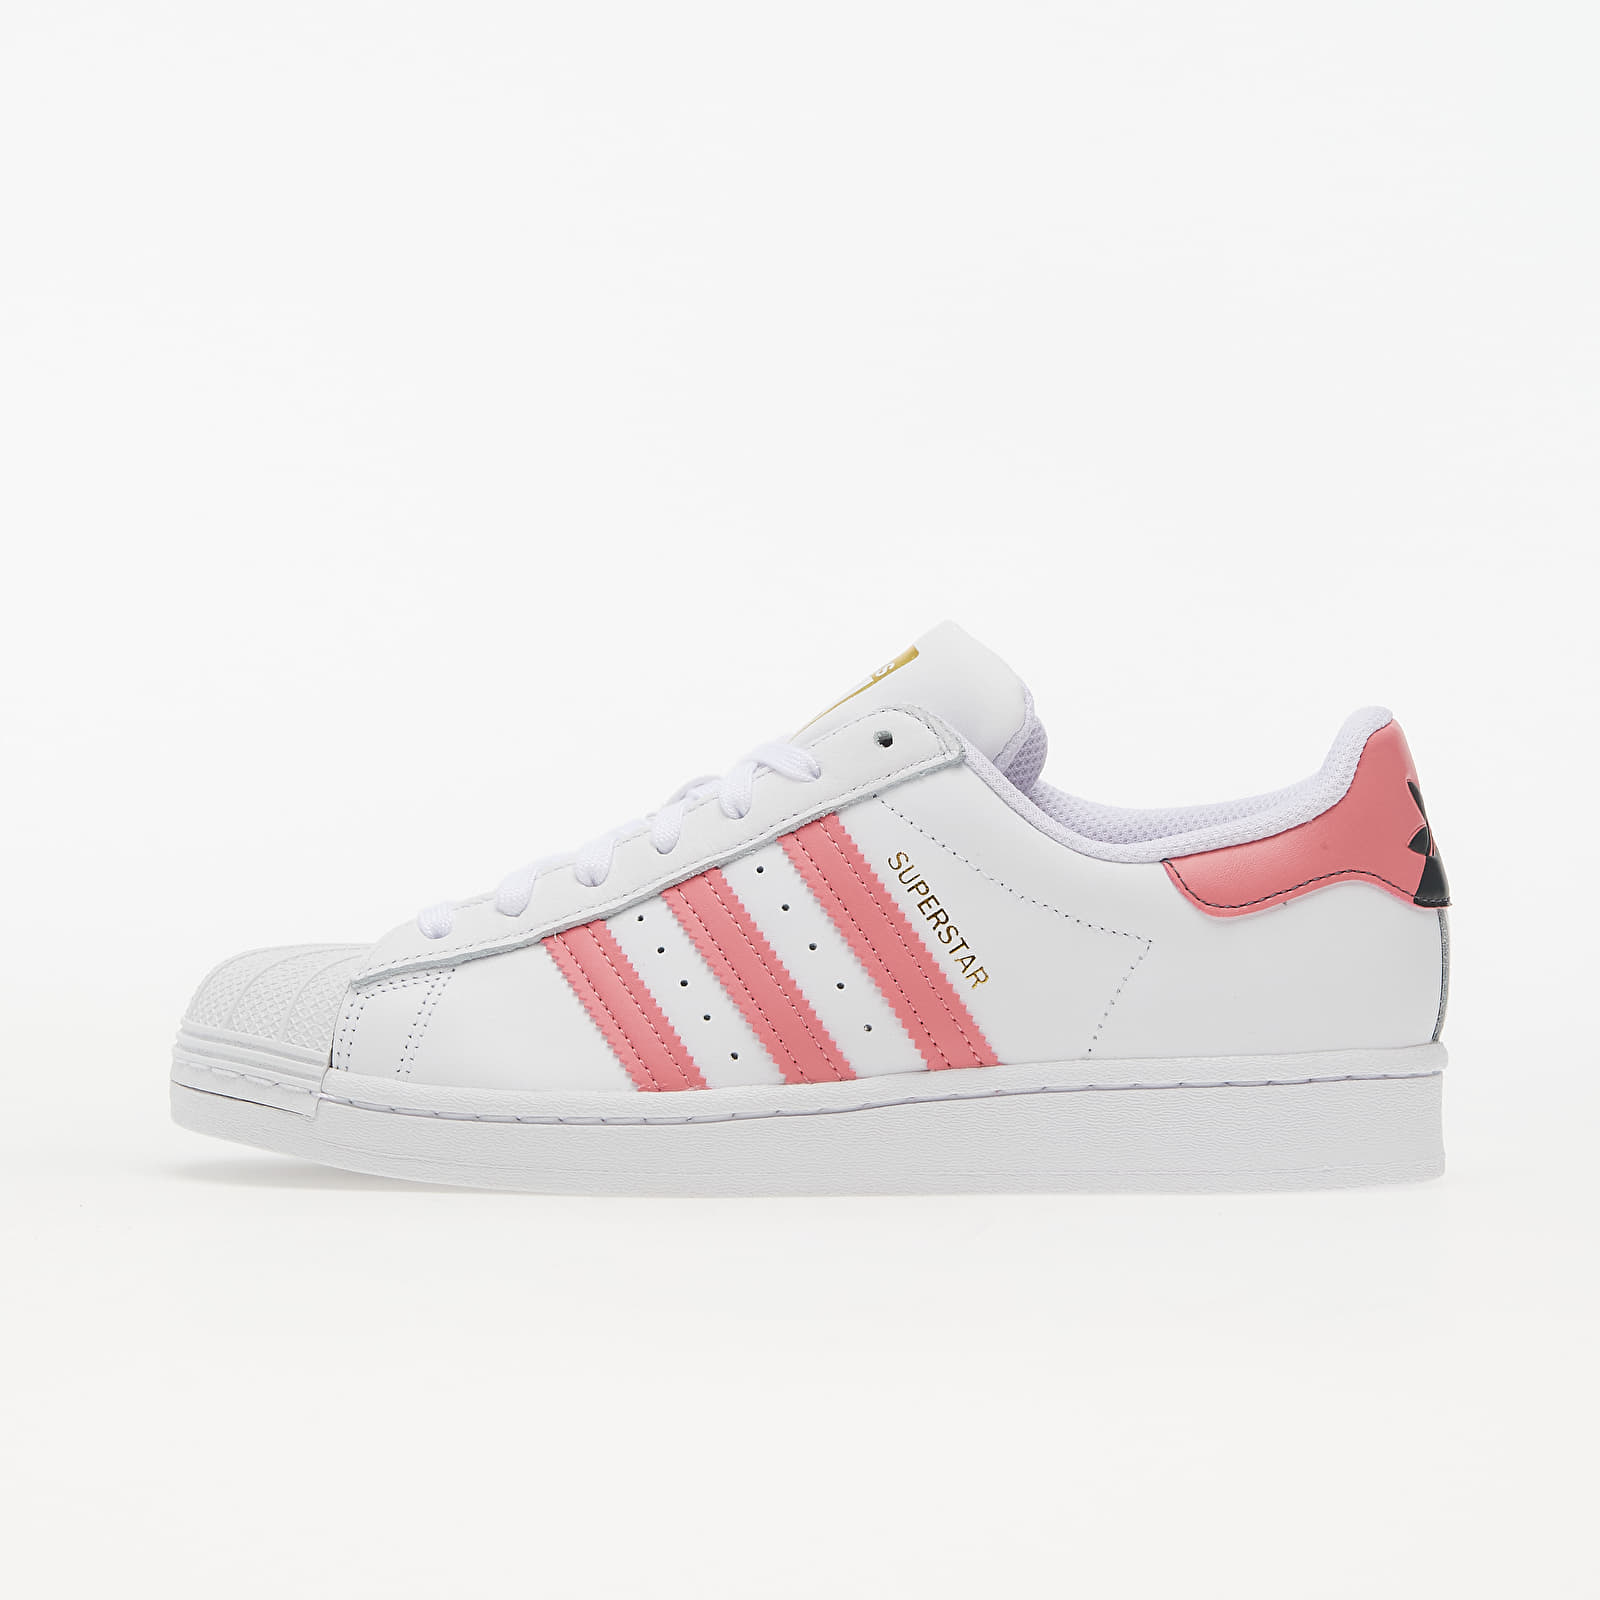 adidas Superstar W Ftw White/ Blue Oxigen/ Gold Metalic EUR 39 1/3